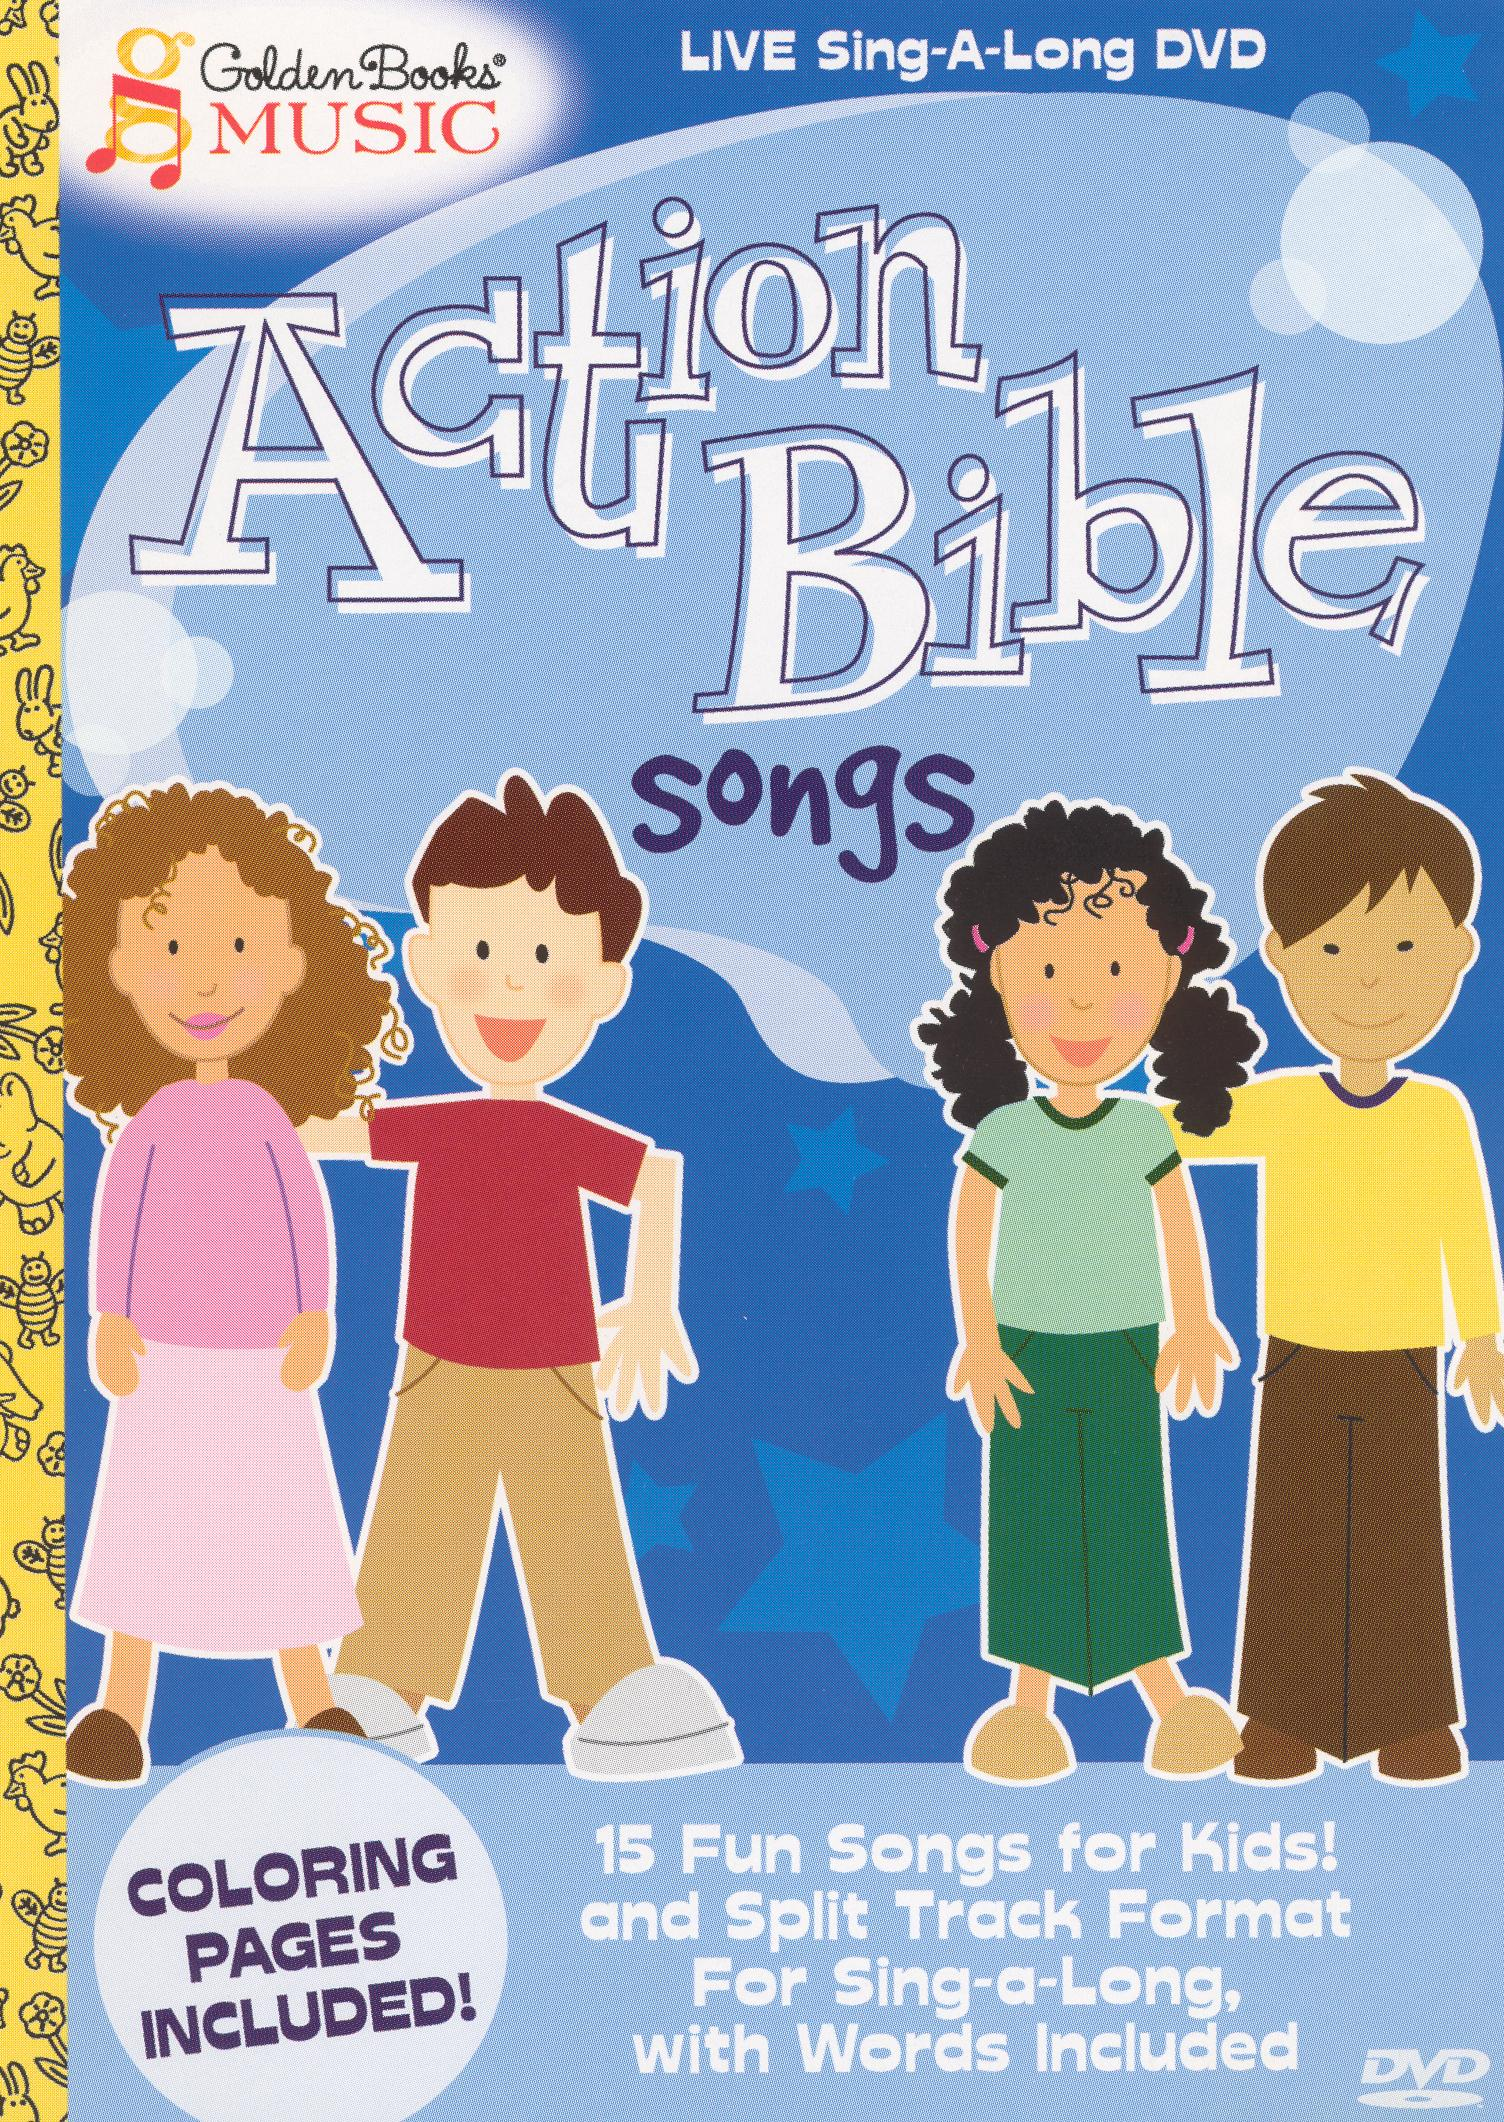 Golden Books Music: Action Bible Songs